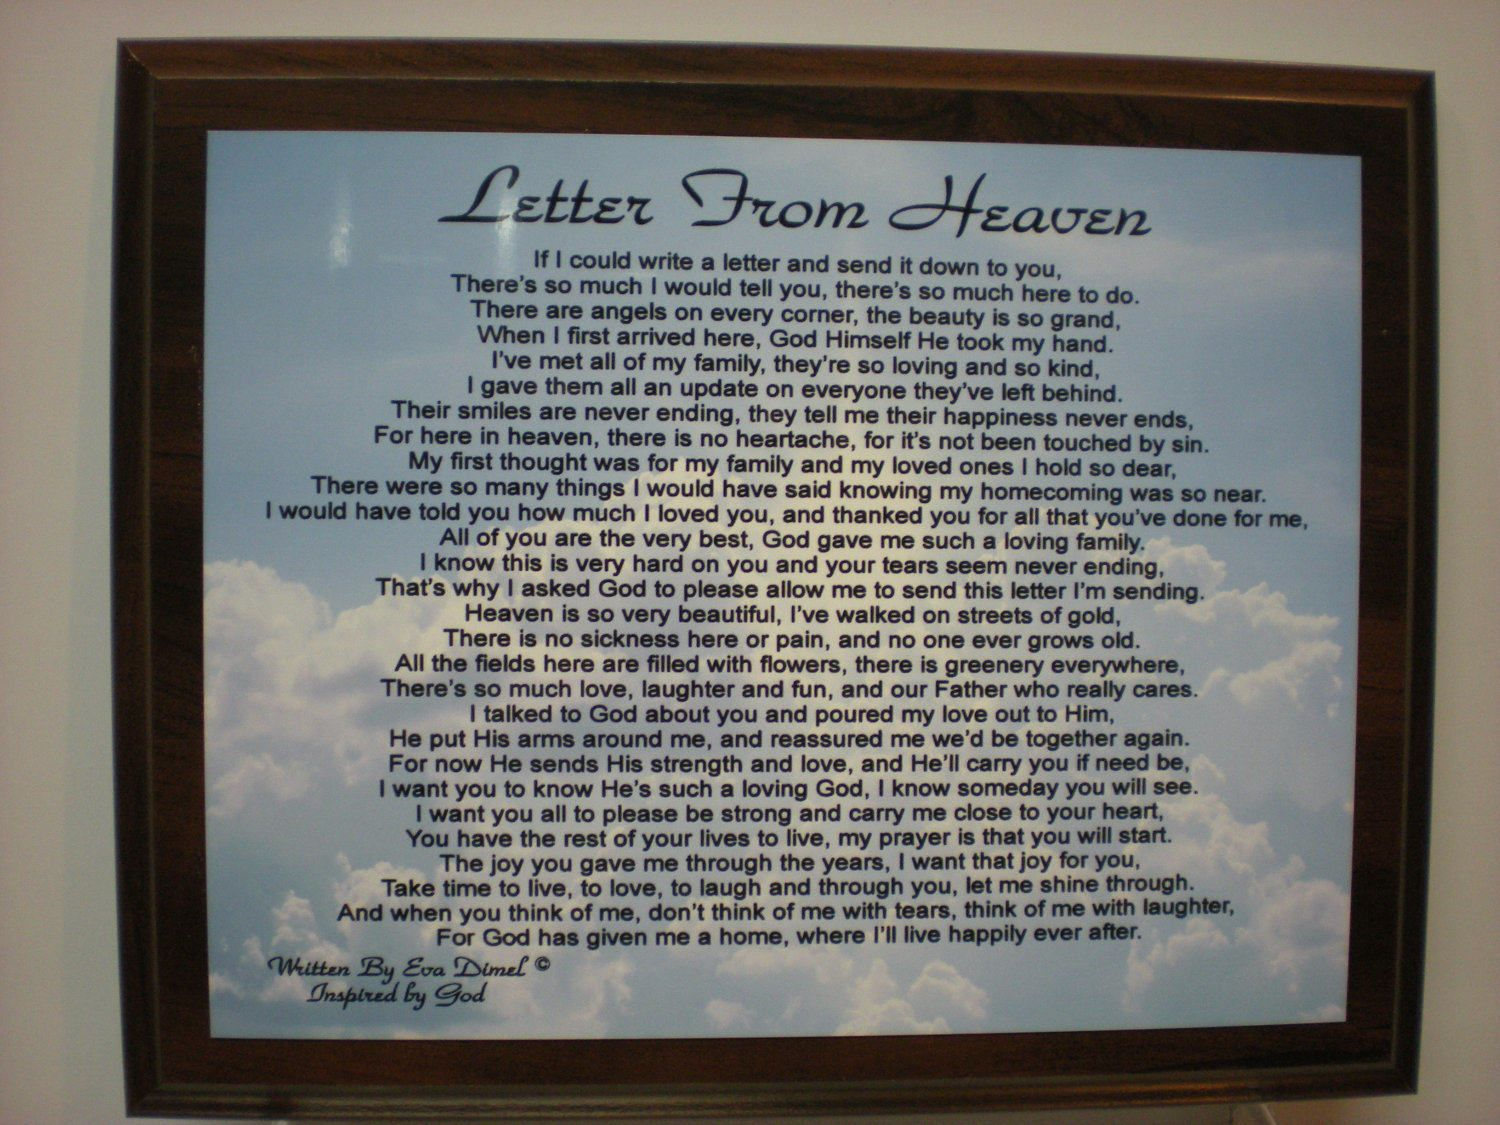 Comforting Quotes About Losing A Loved One Missing A Loved One In Heaven Poems  Poems  Pinterest  Heaven